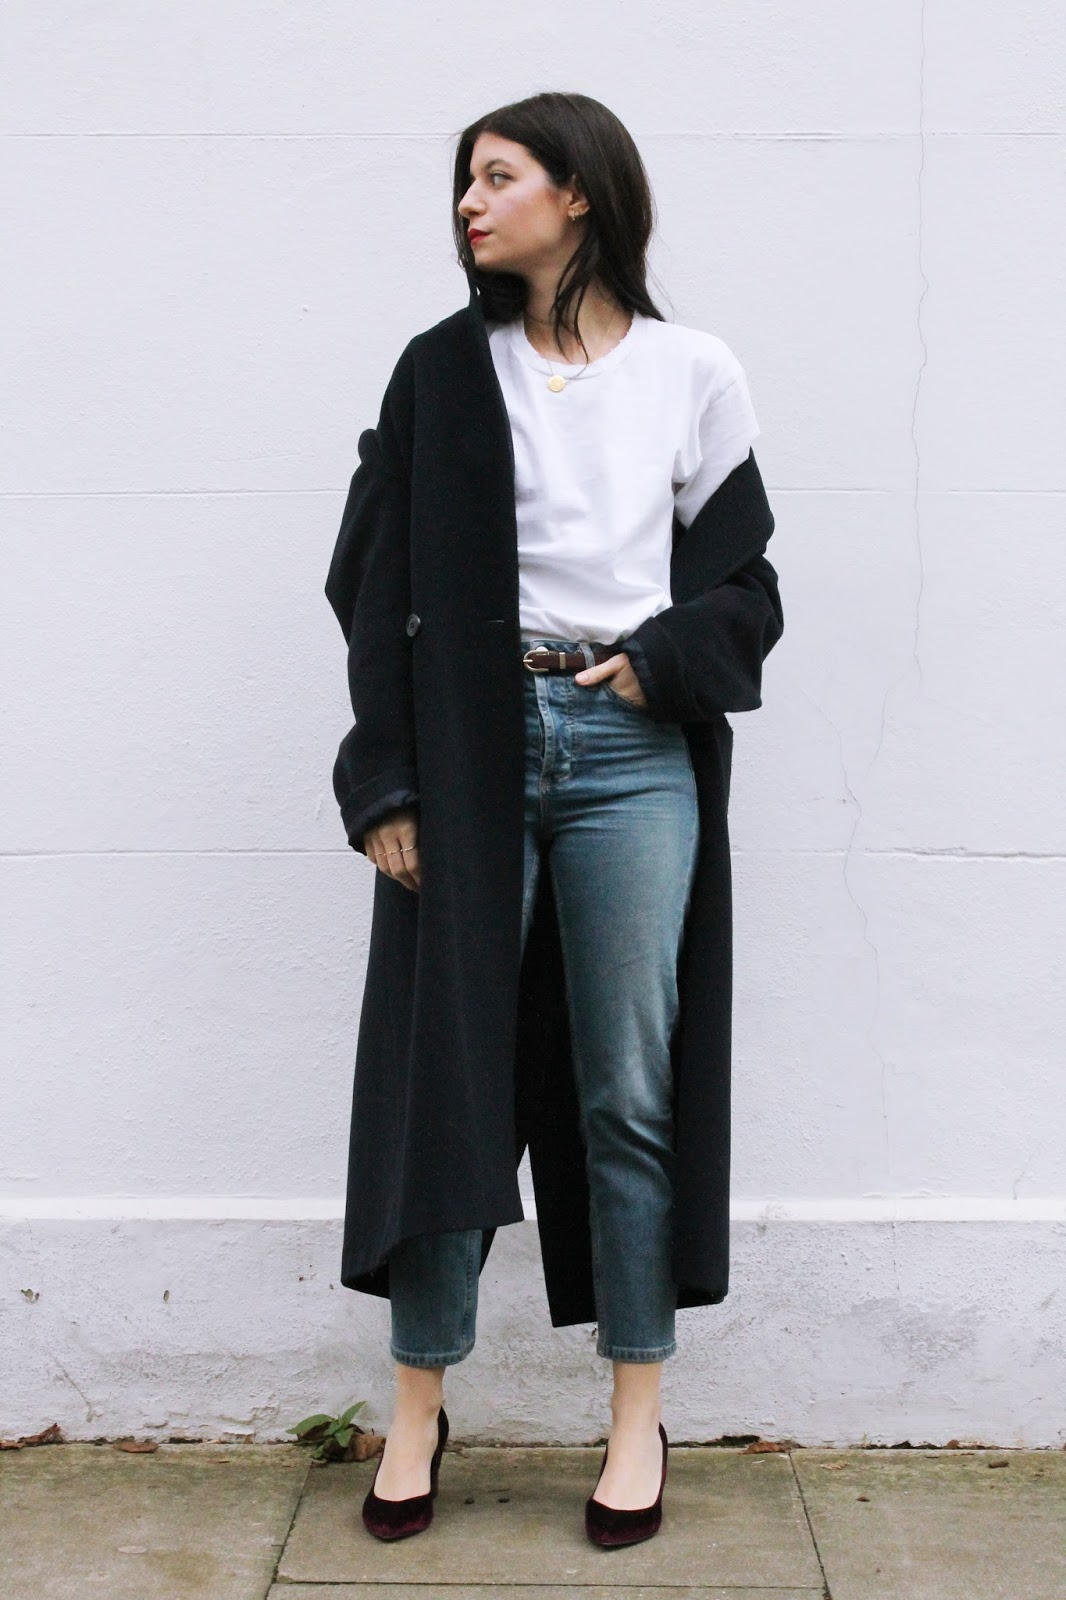 denim, white t shirt, winter outfit, red lips, fashion blogger, london blogger, microinfluencer, guess watch, giveaway, velvet shoes